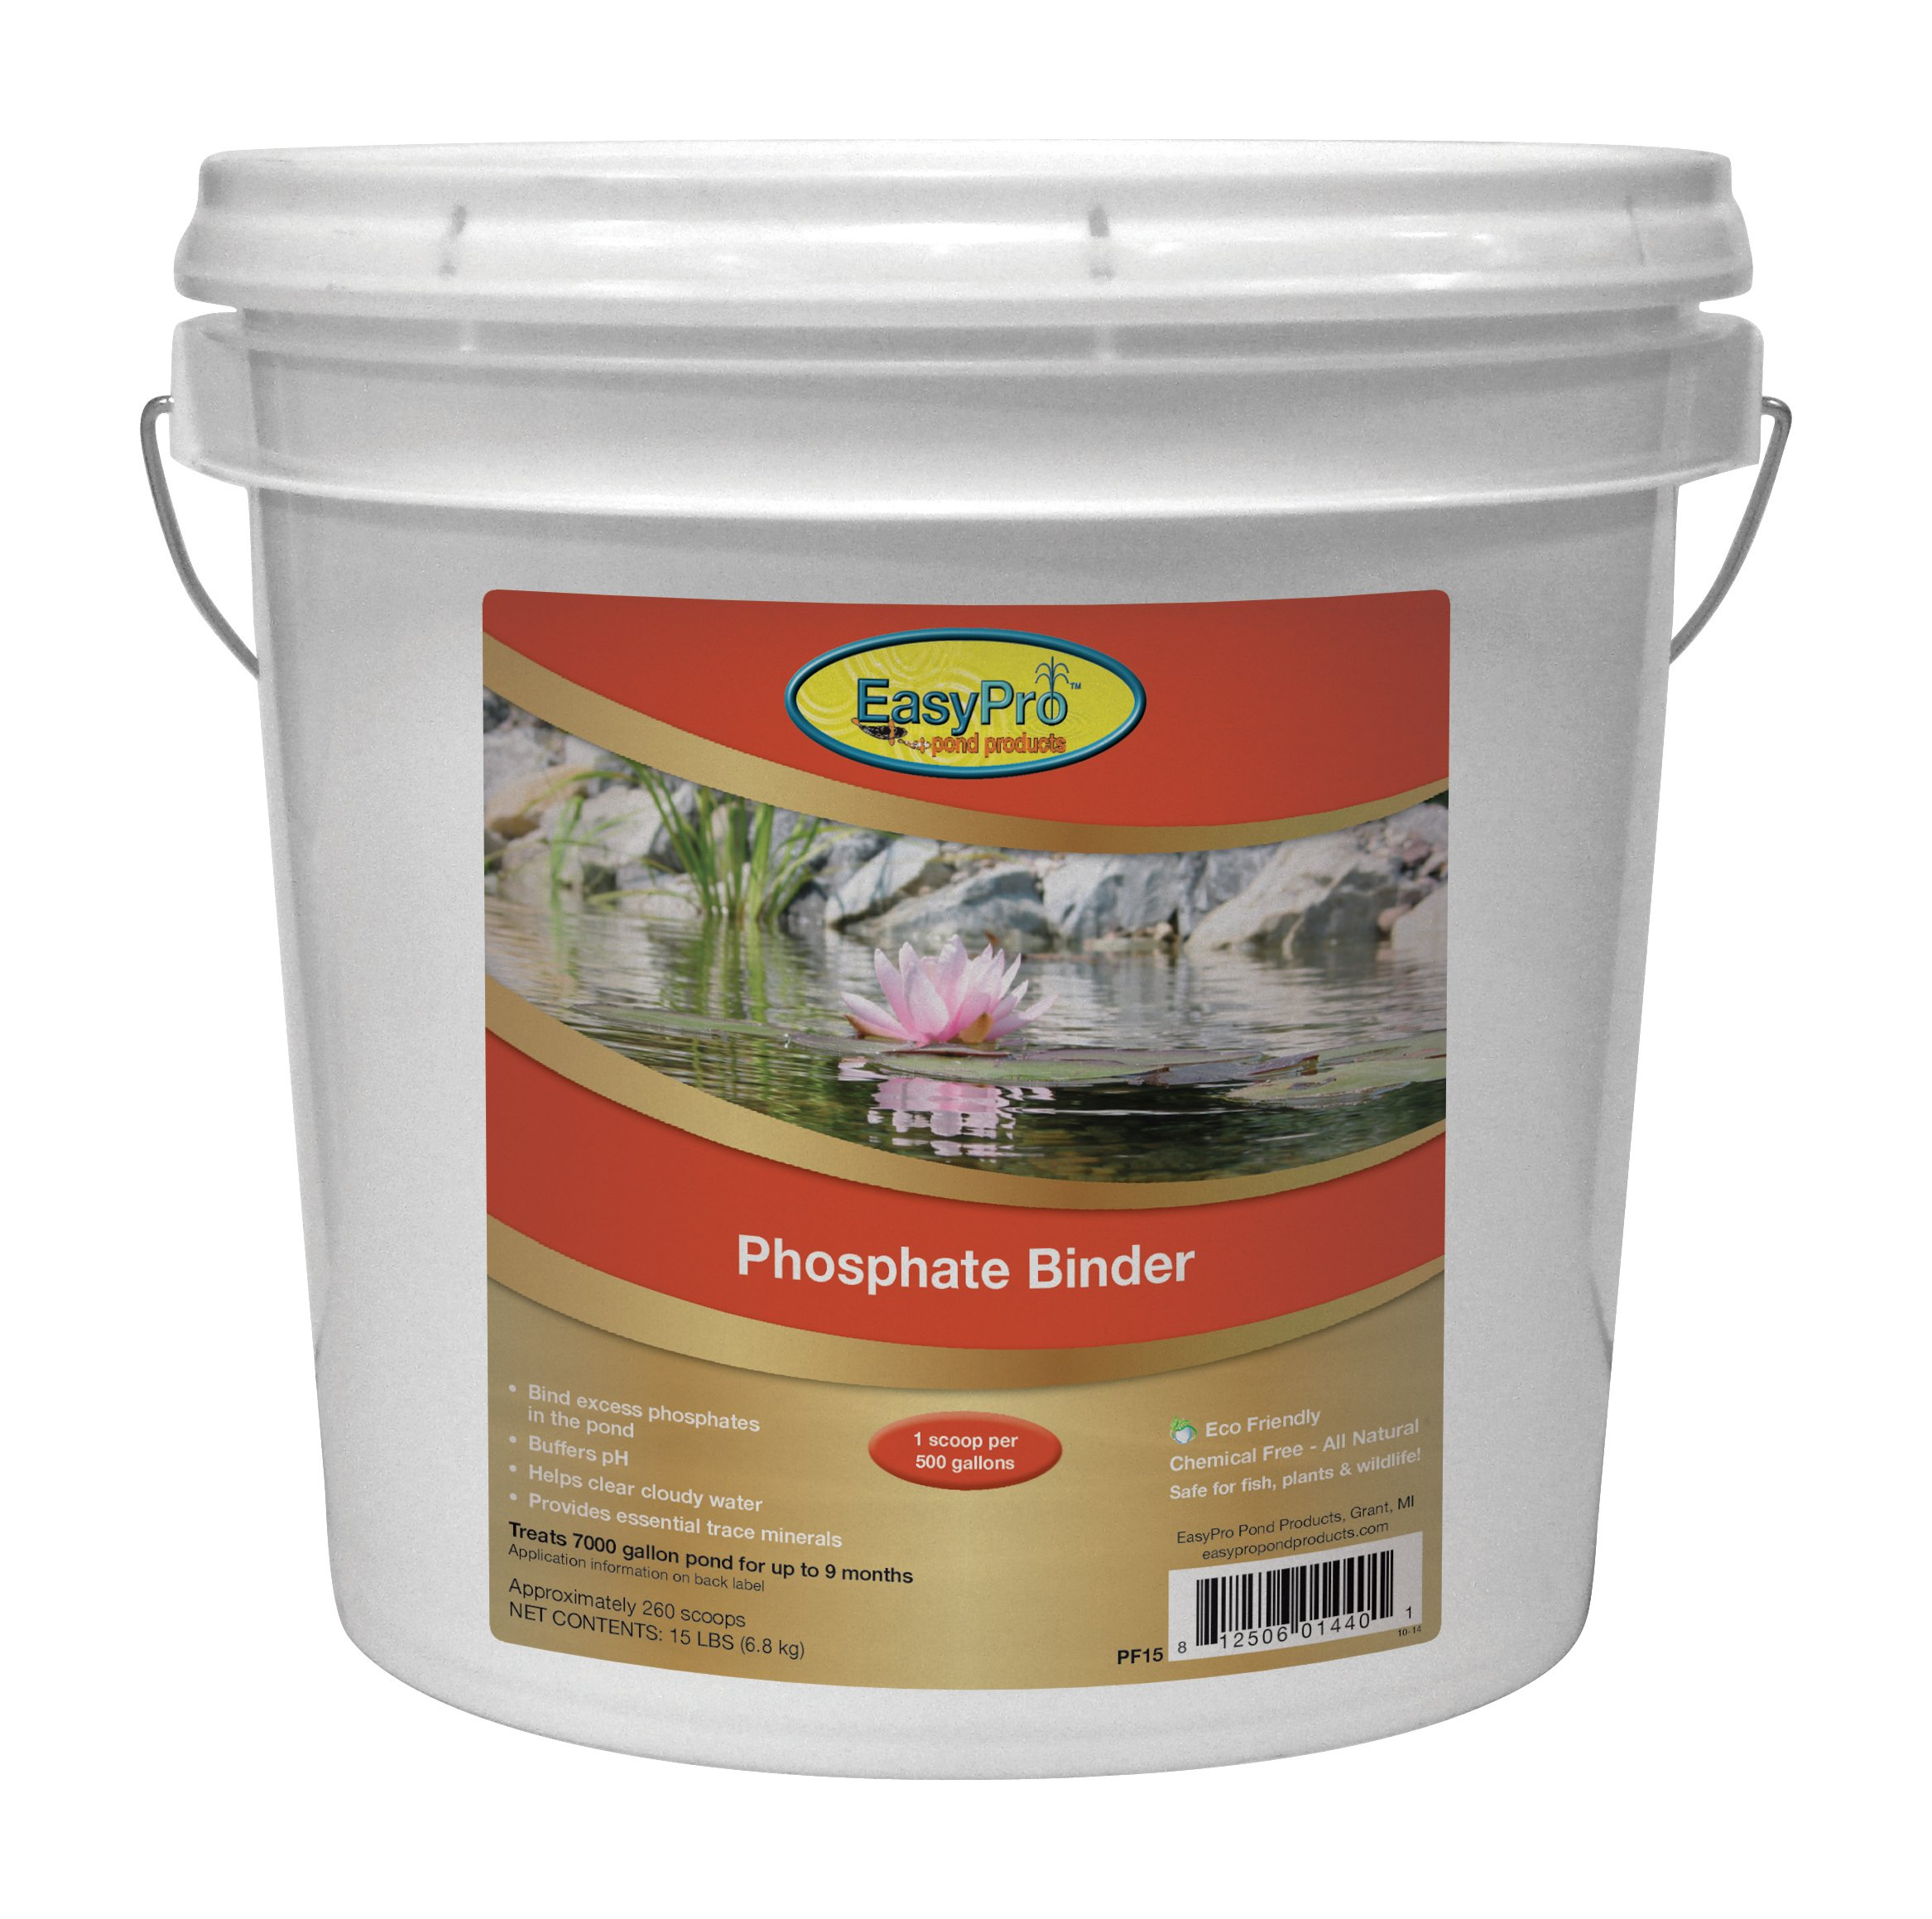 EasyPro Products PF15 All Natural Phosphate Binder by EasyPro Pond Products